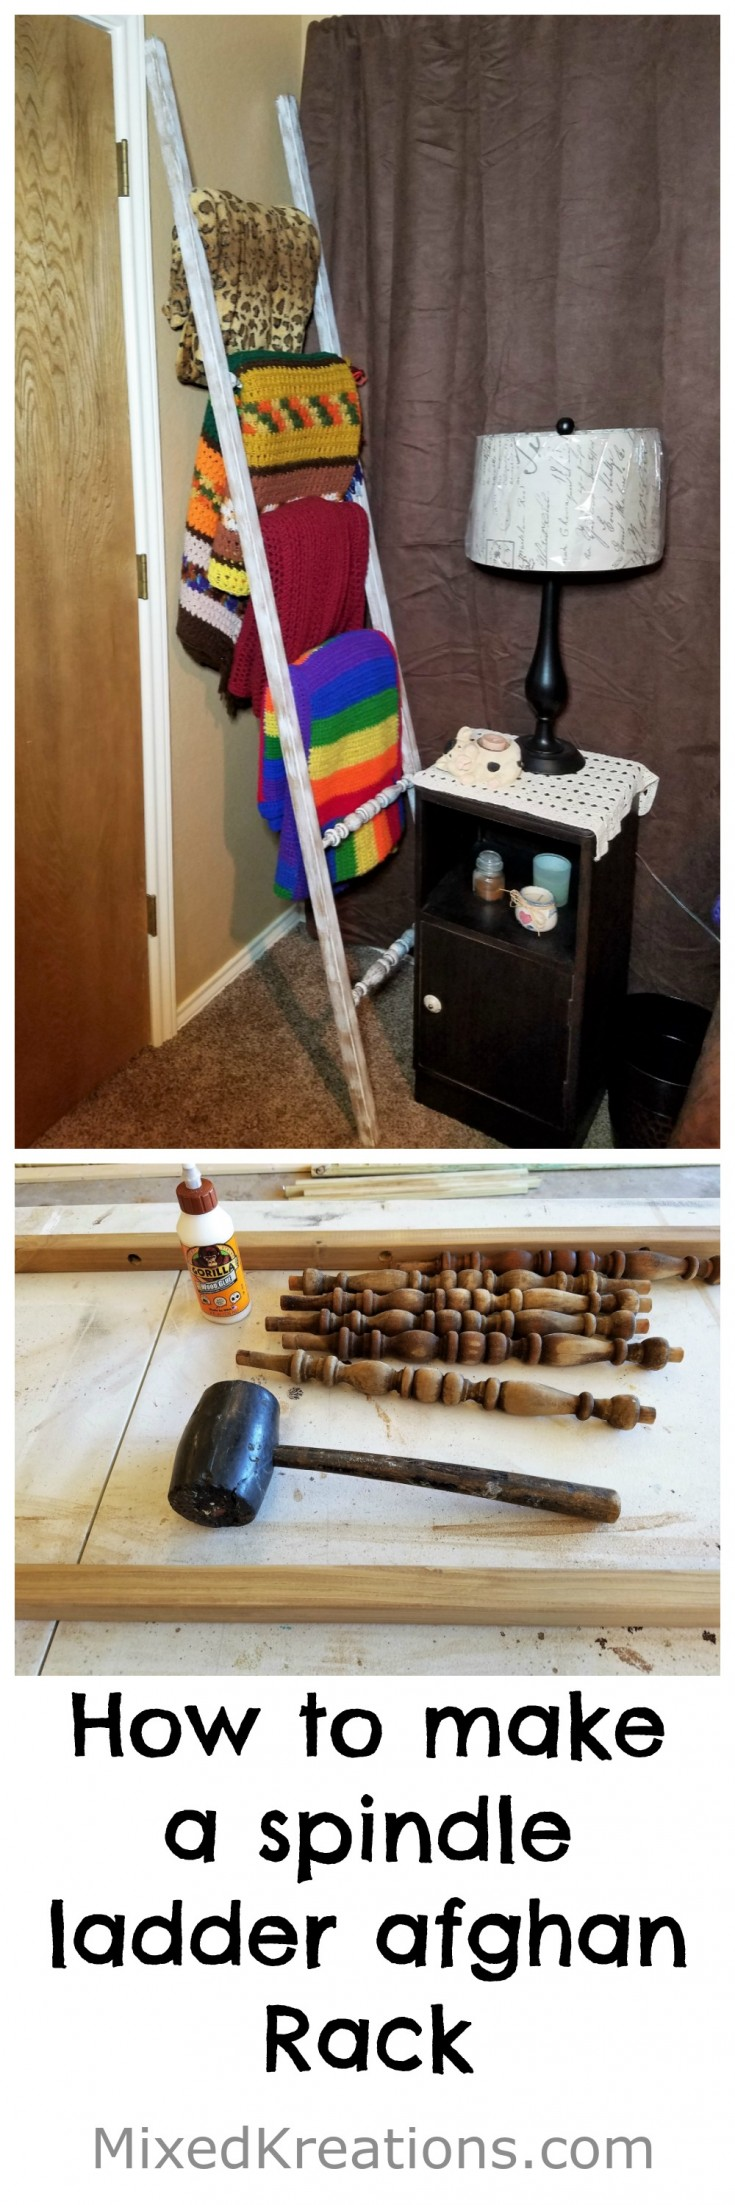 diy spindle ladder afghan rack